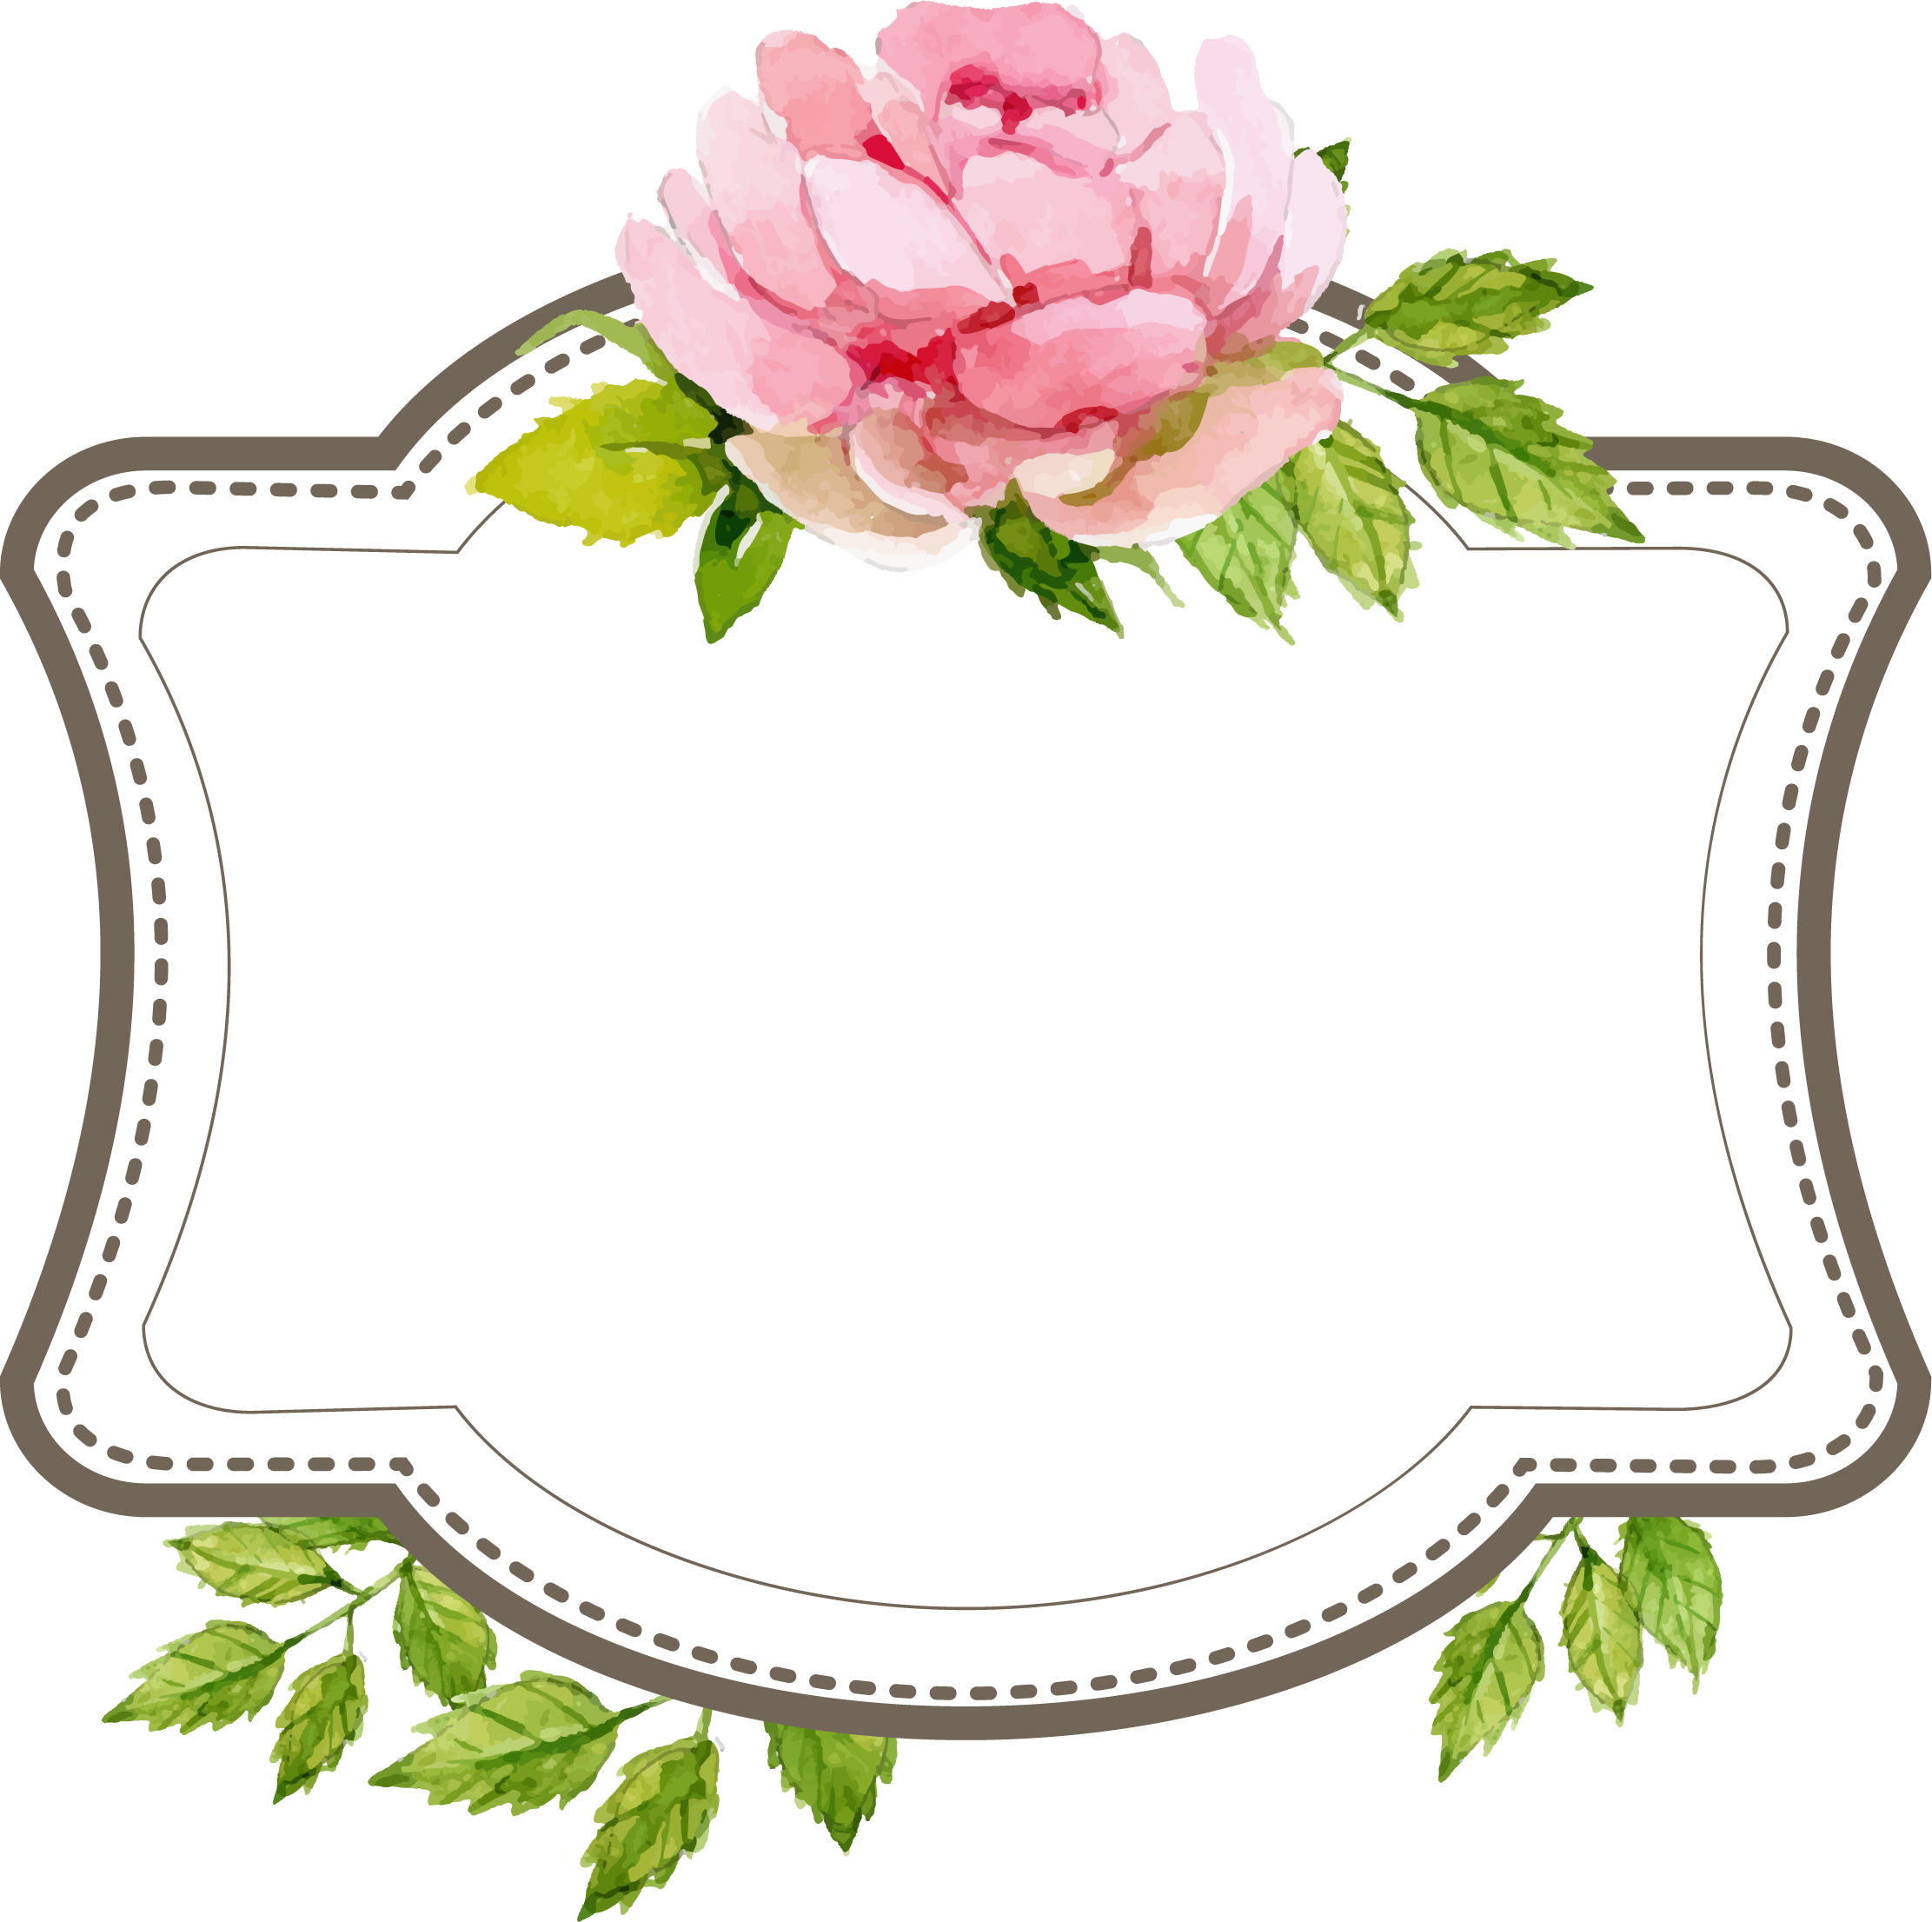 Pin by freepngclipart on Images.